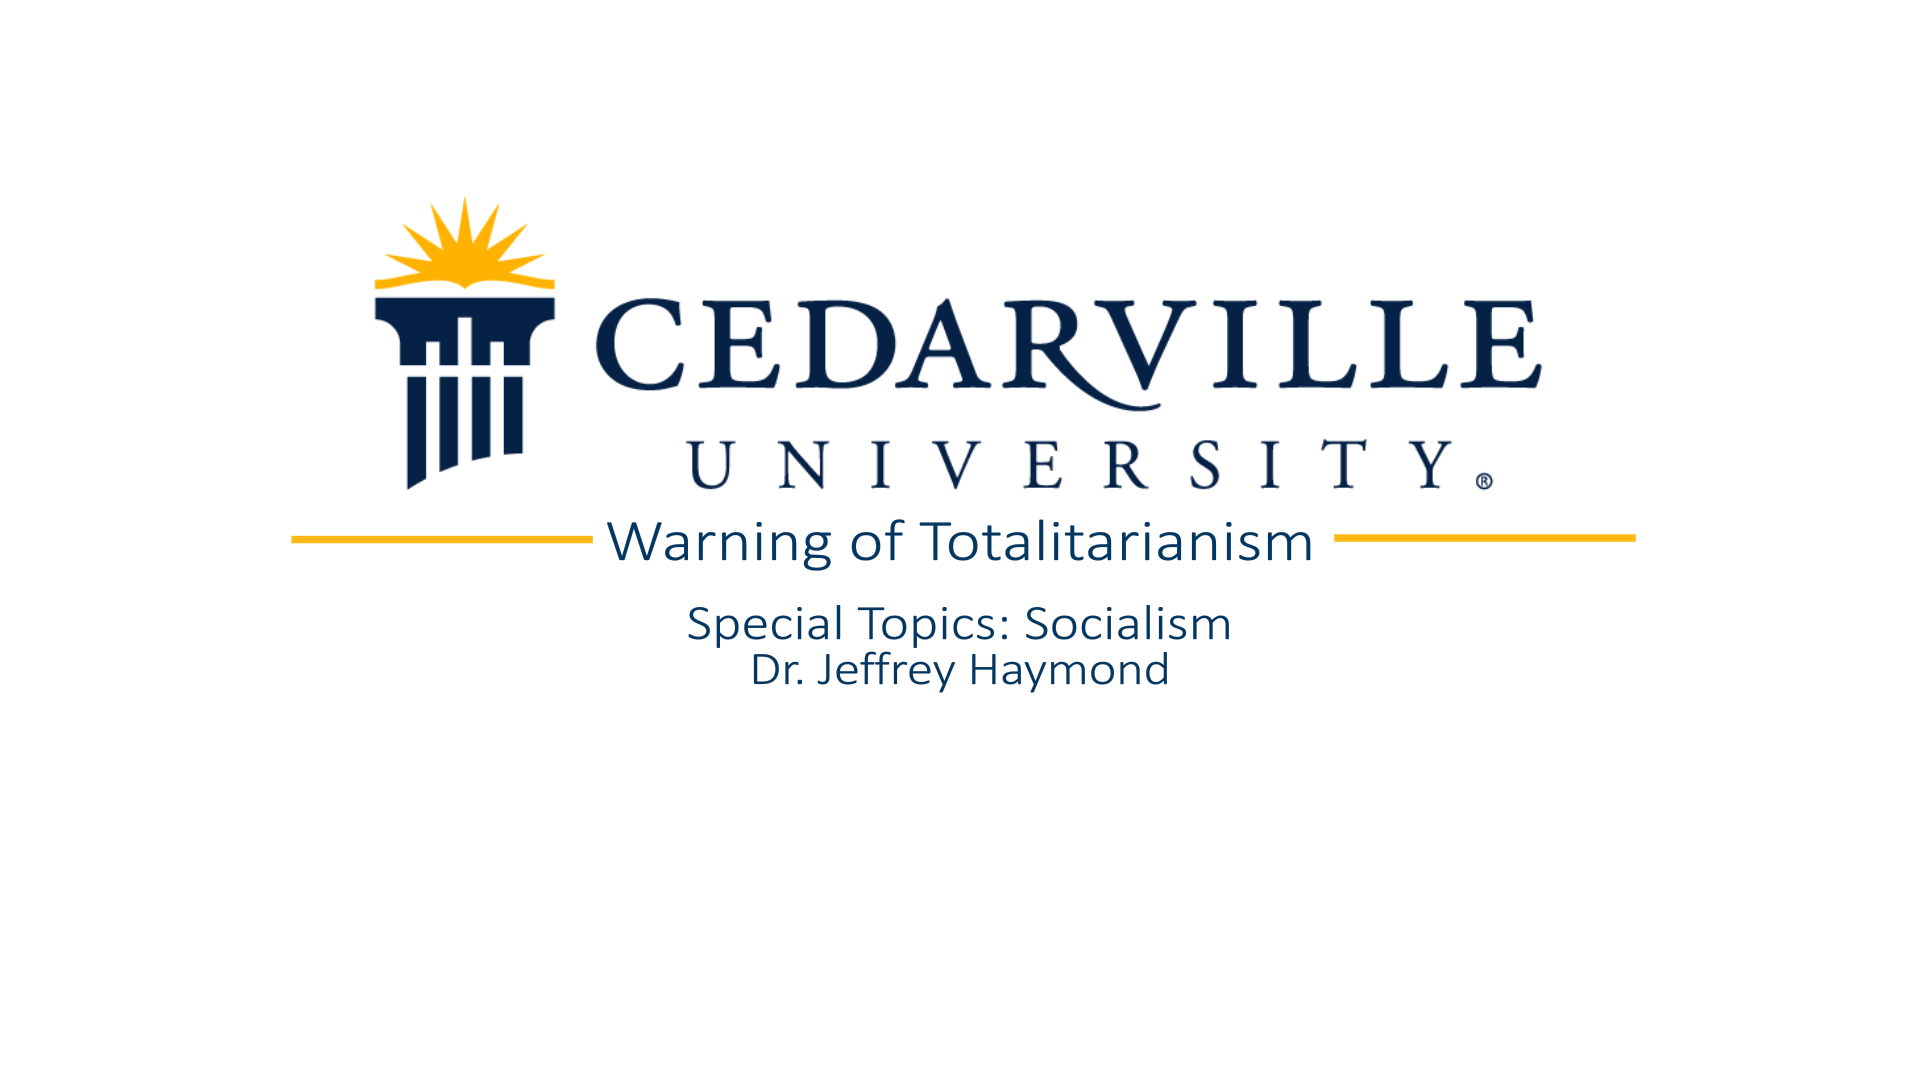 View thumbnail for Warning of Totalitarianism